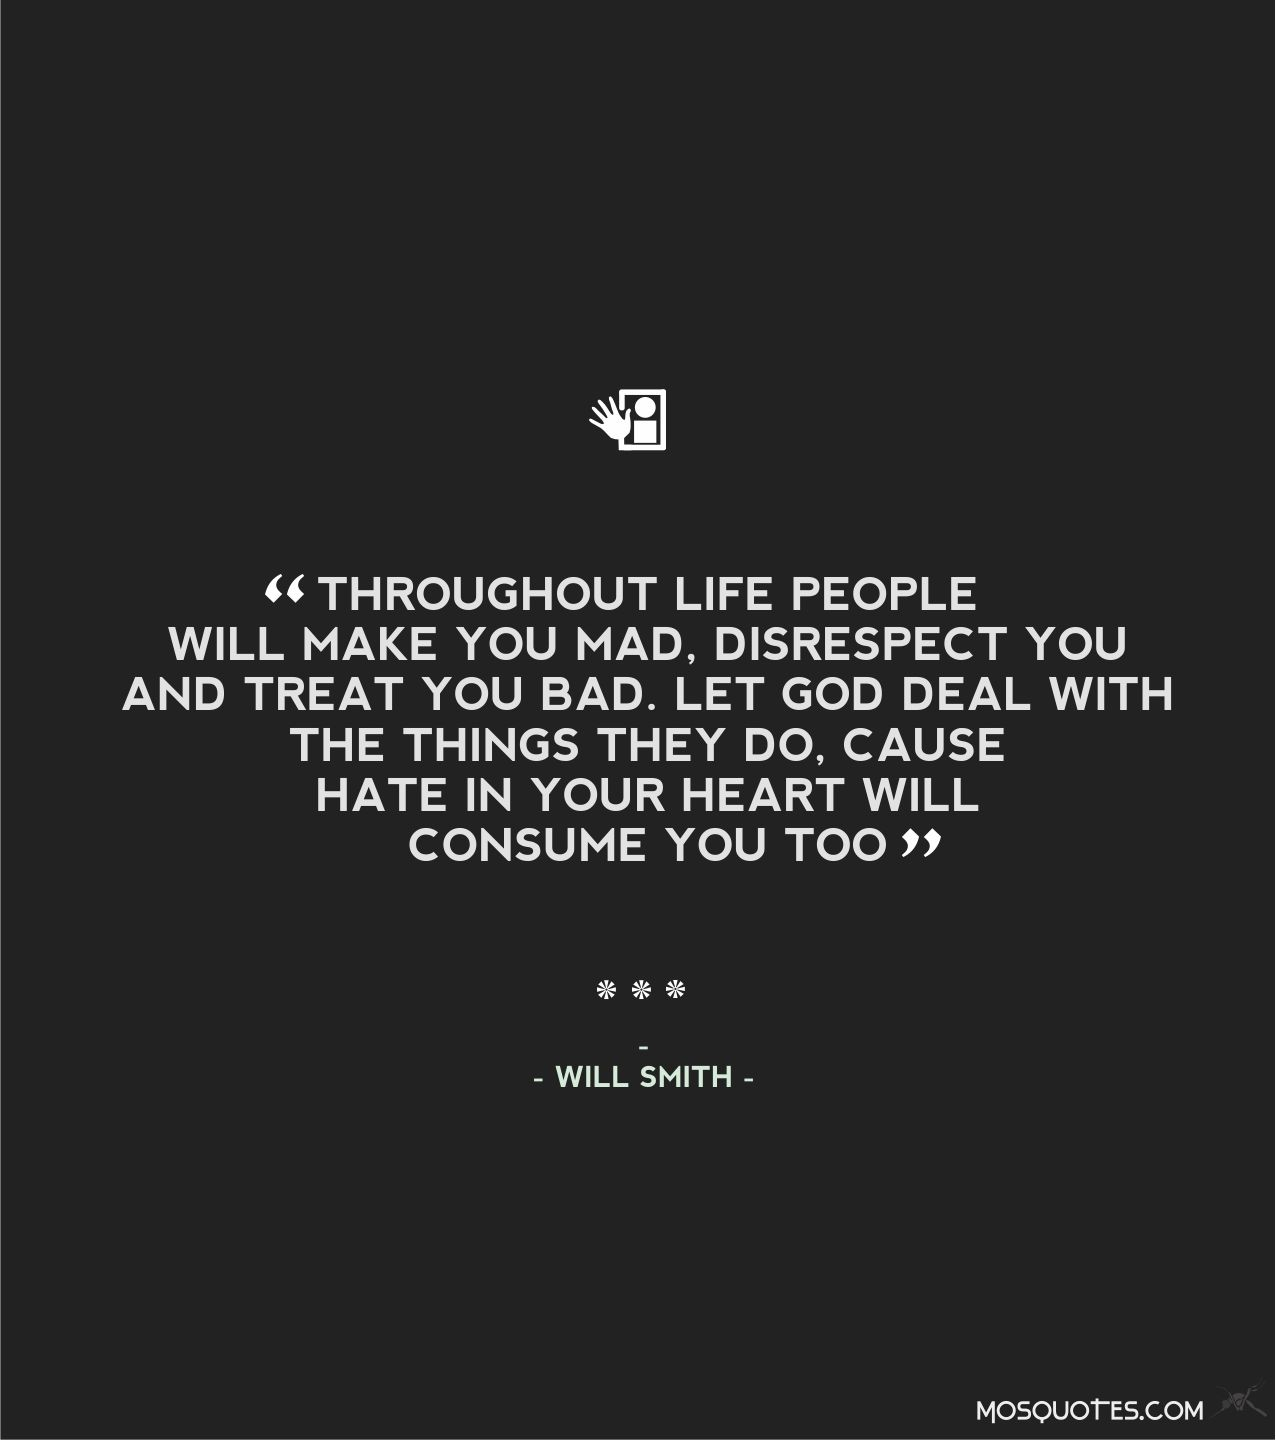 Famous Quotes About God: Famous People Quotes About God. QuotesGram